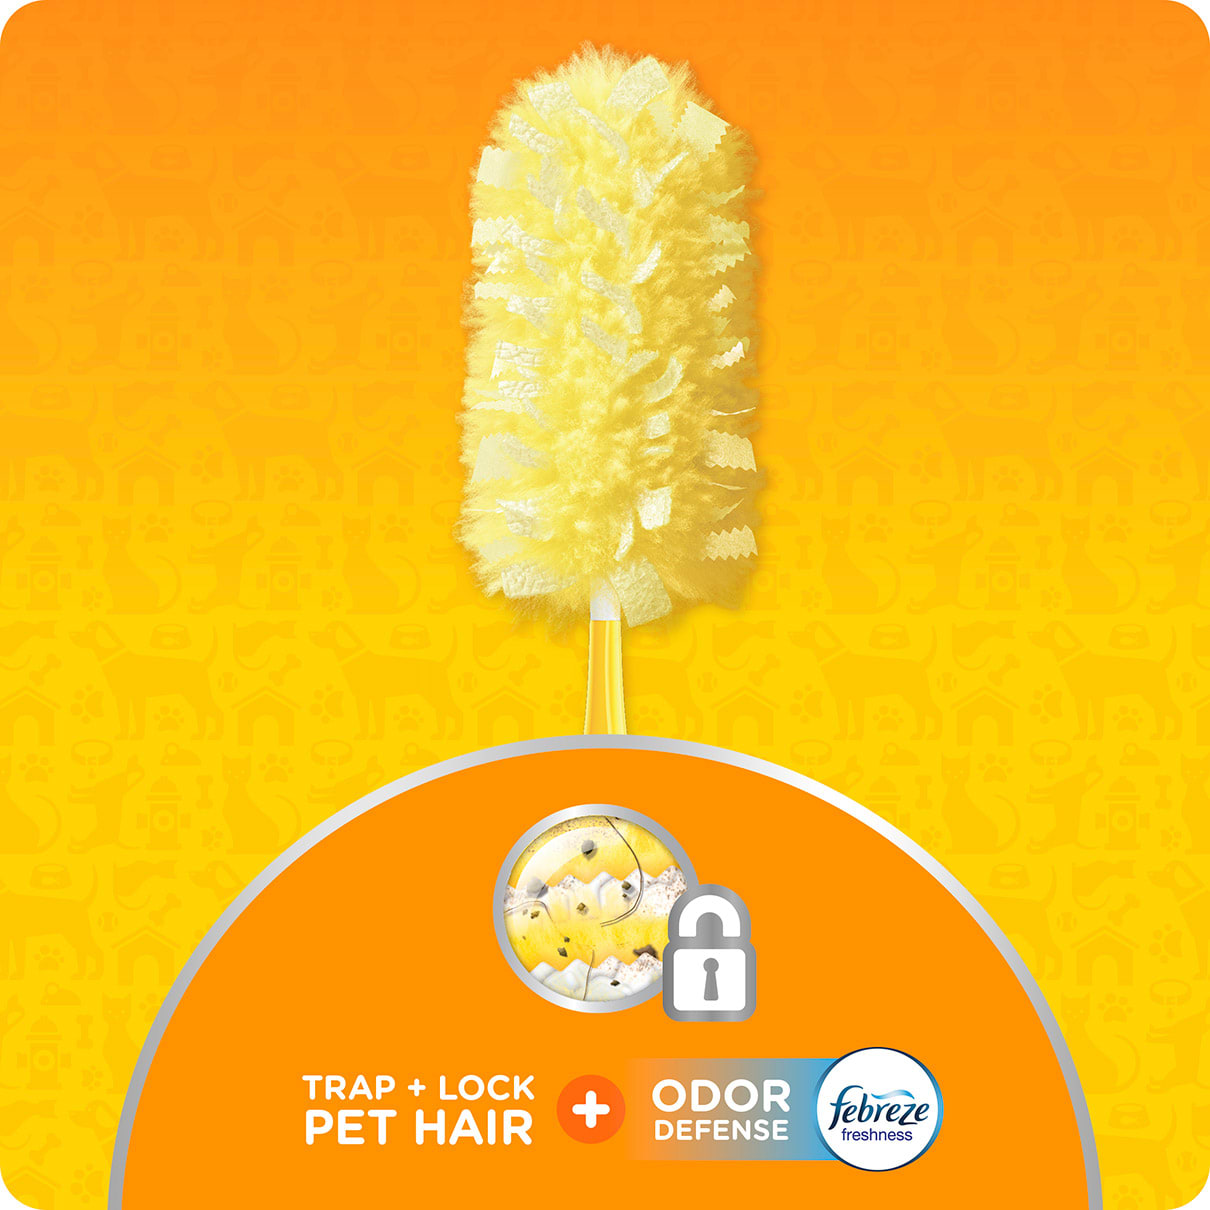 Swiffer Duster Trap+Lock Pet Hair